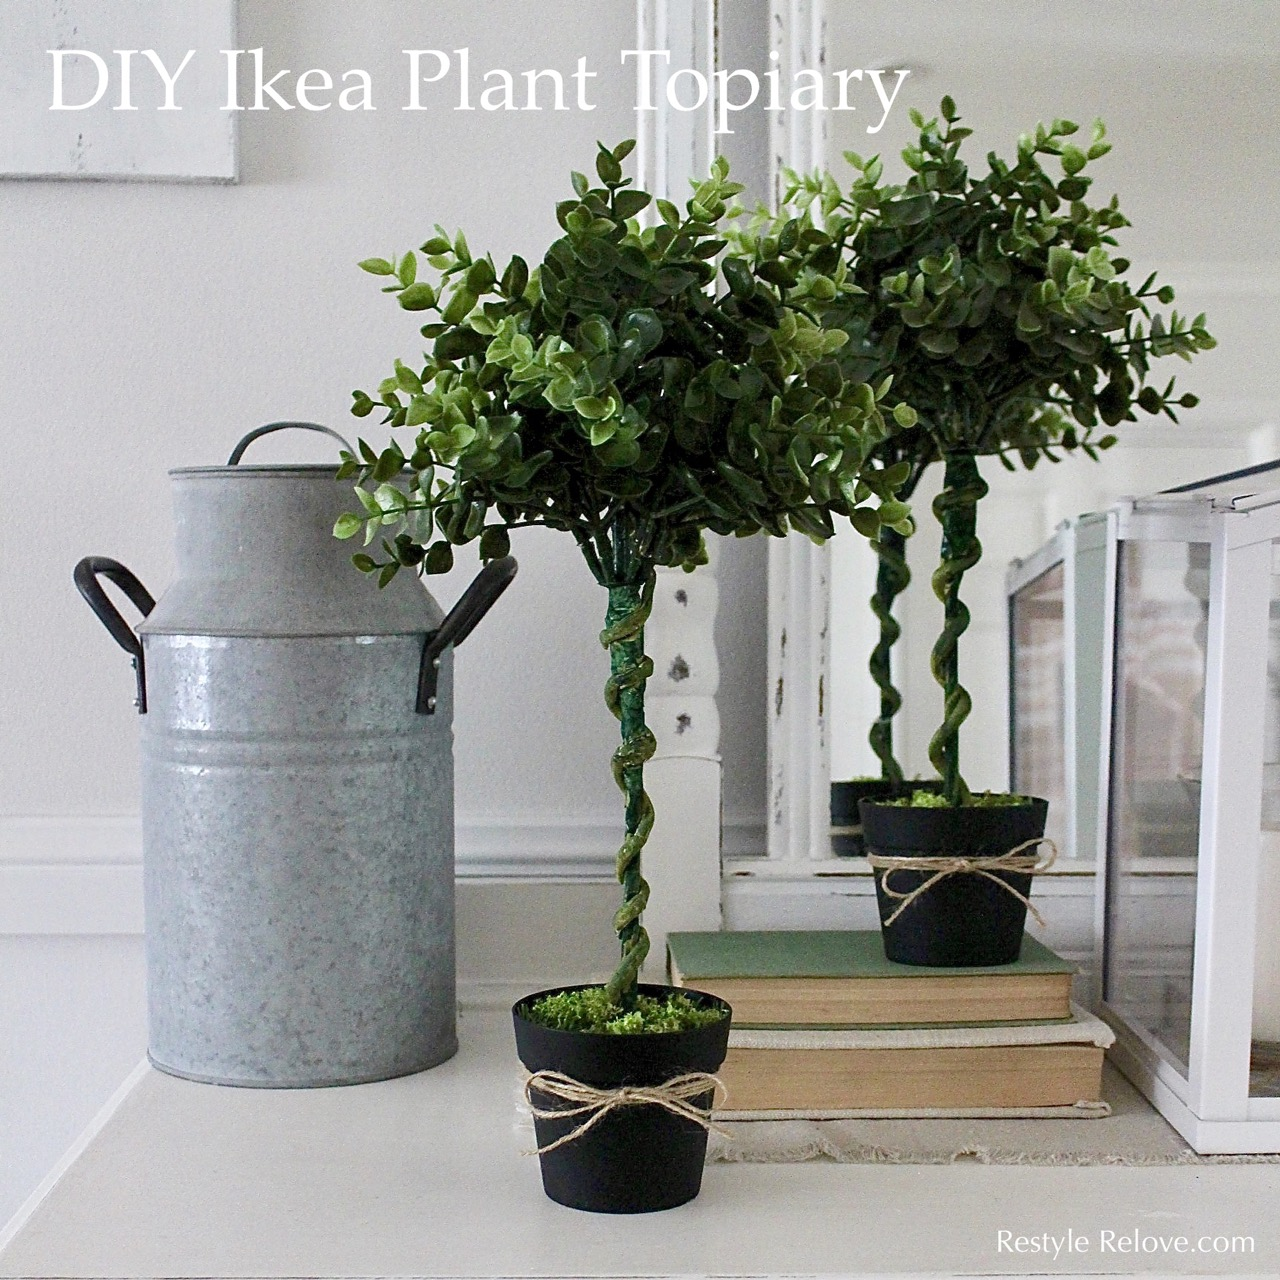 Ikea Artificial Trees: DIY Ikea Plant Topiary Tutorial